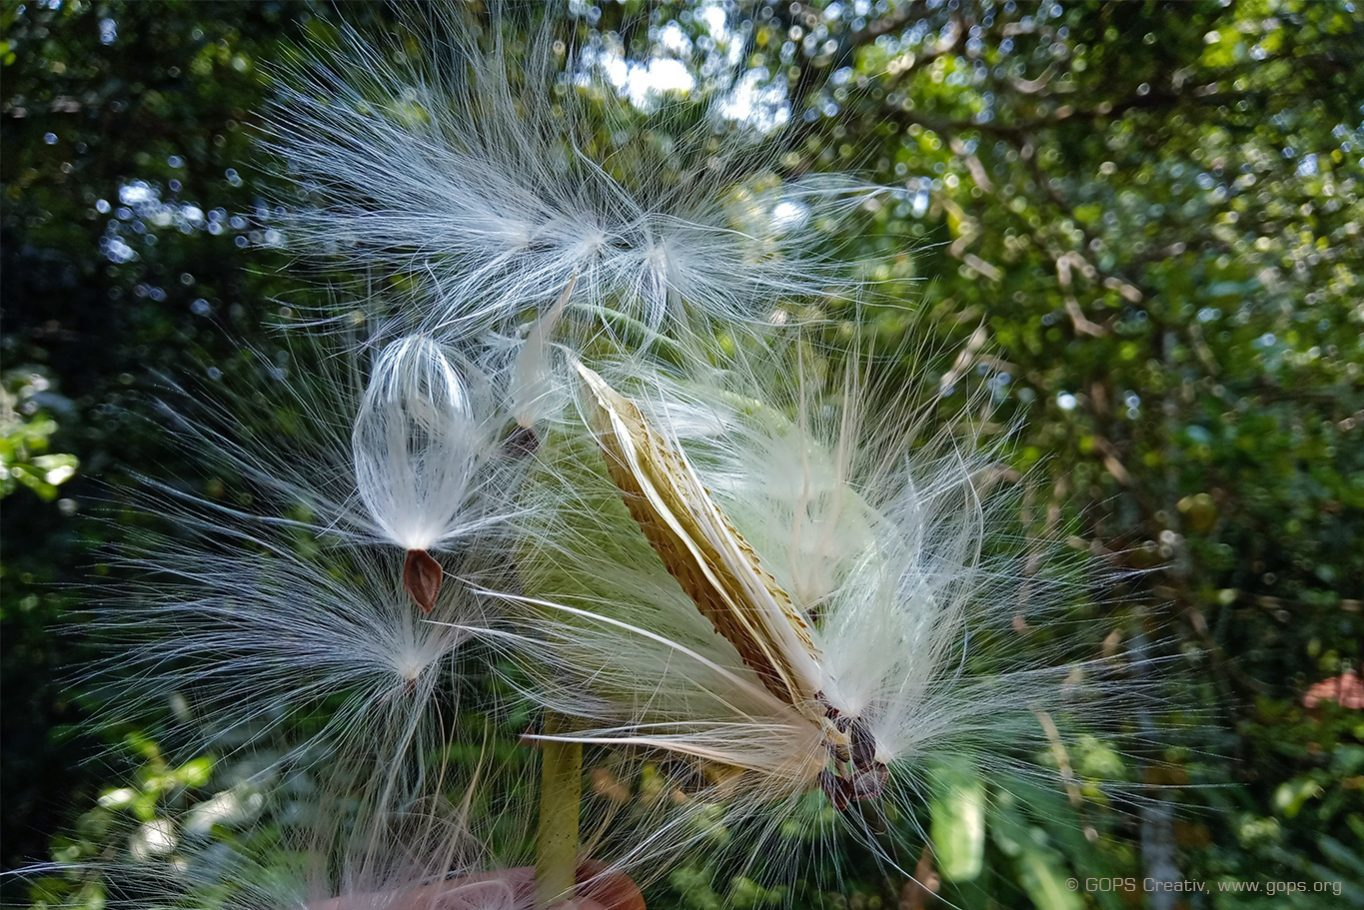 APPOOPPAN THADI അപ്പൂപ്പൻ താടി (MILKWEED SEEDS DISPERSION BY WIND) Calotropis Gigantea (Crown flower / എരുക്കു)